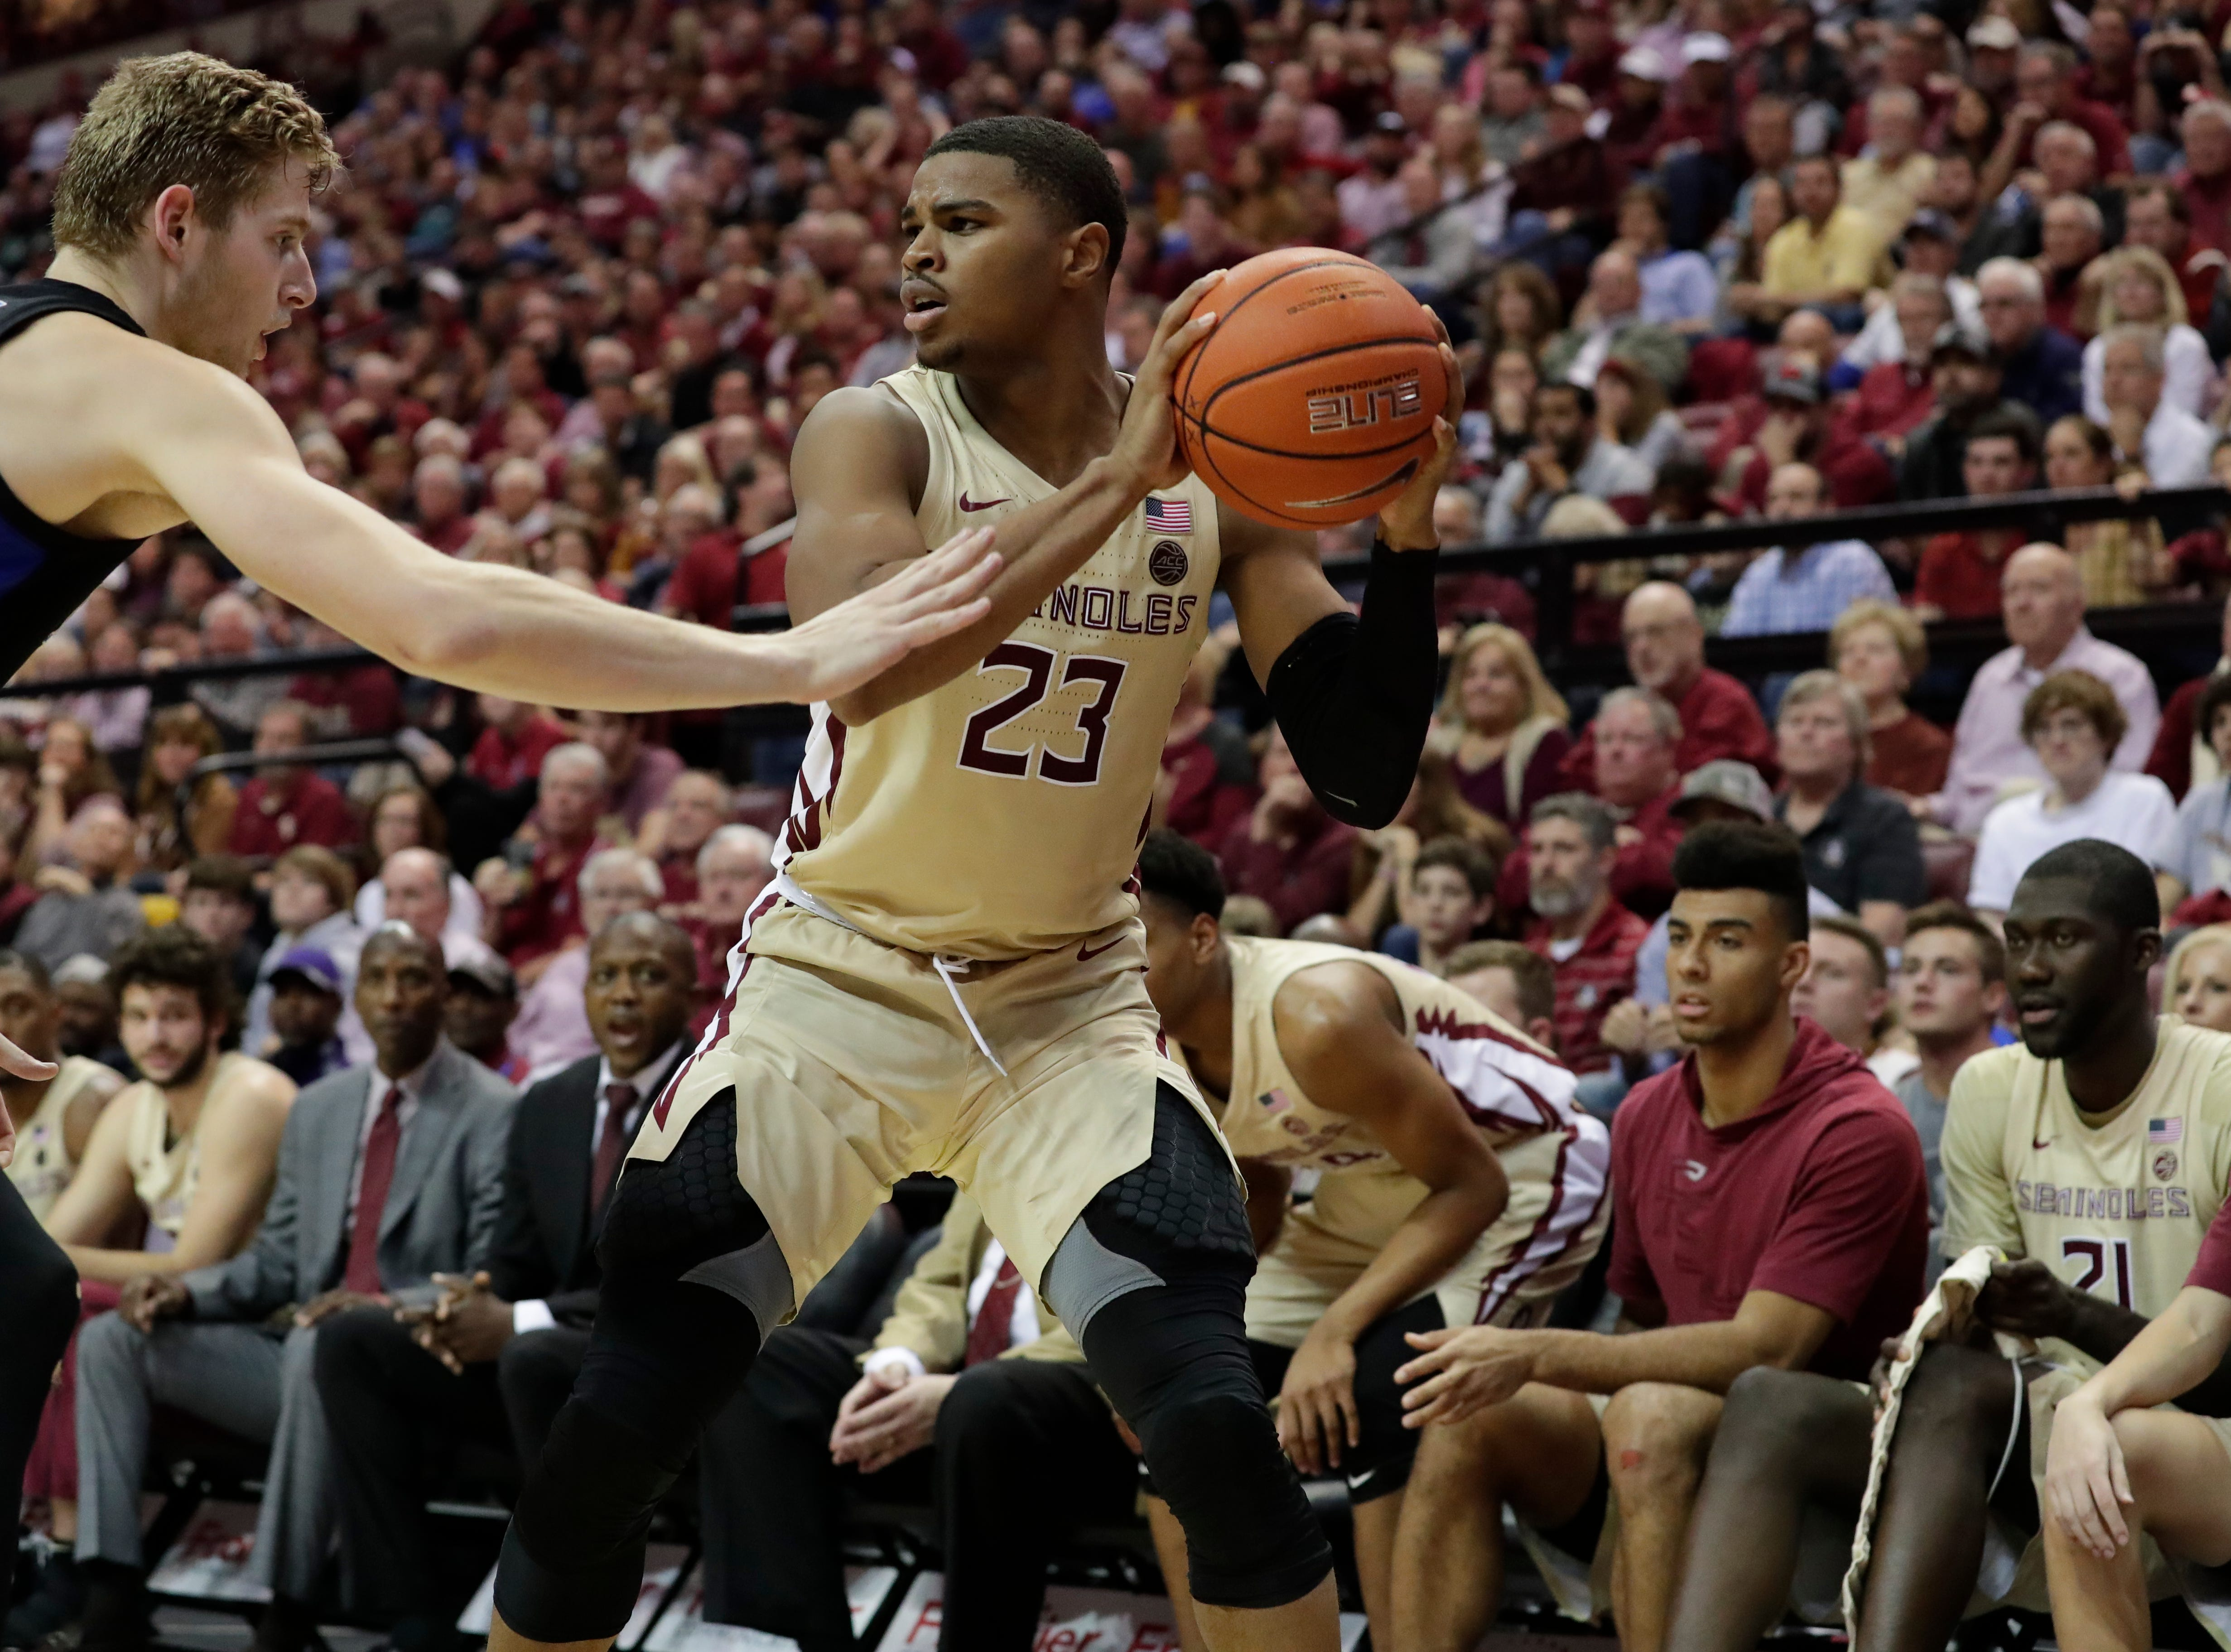 Florida State Seminoles guard M.J. Walker (23) looks for an open teammate to pass to. Ranked 13 in the ACC, the Florida State Seminoles host the number 1 team, the Duke Blue Devils, at the Tucker Civic Center, Saturday, Jan. 12, 2019.